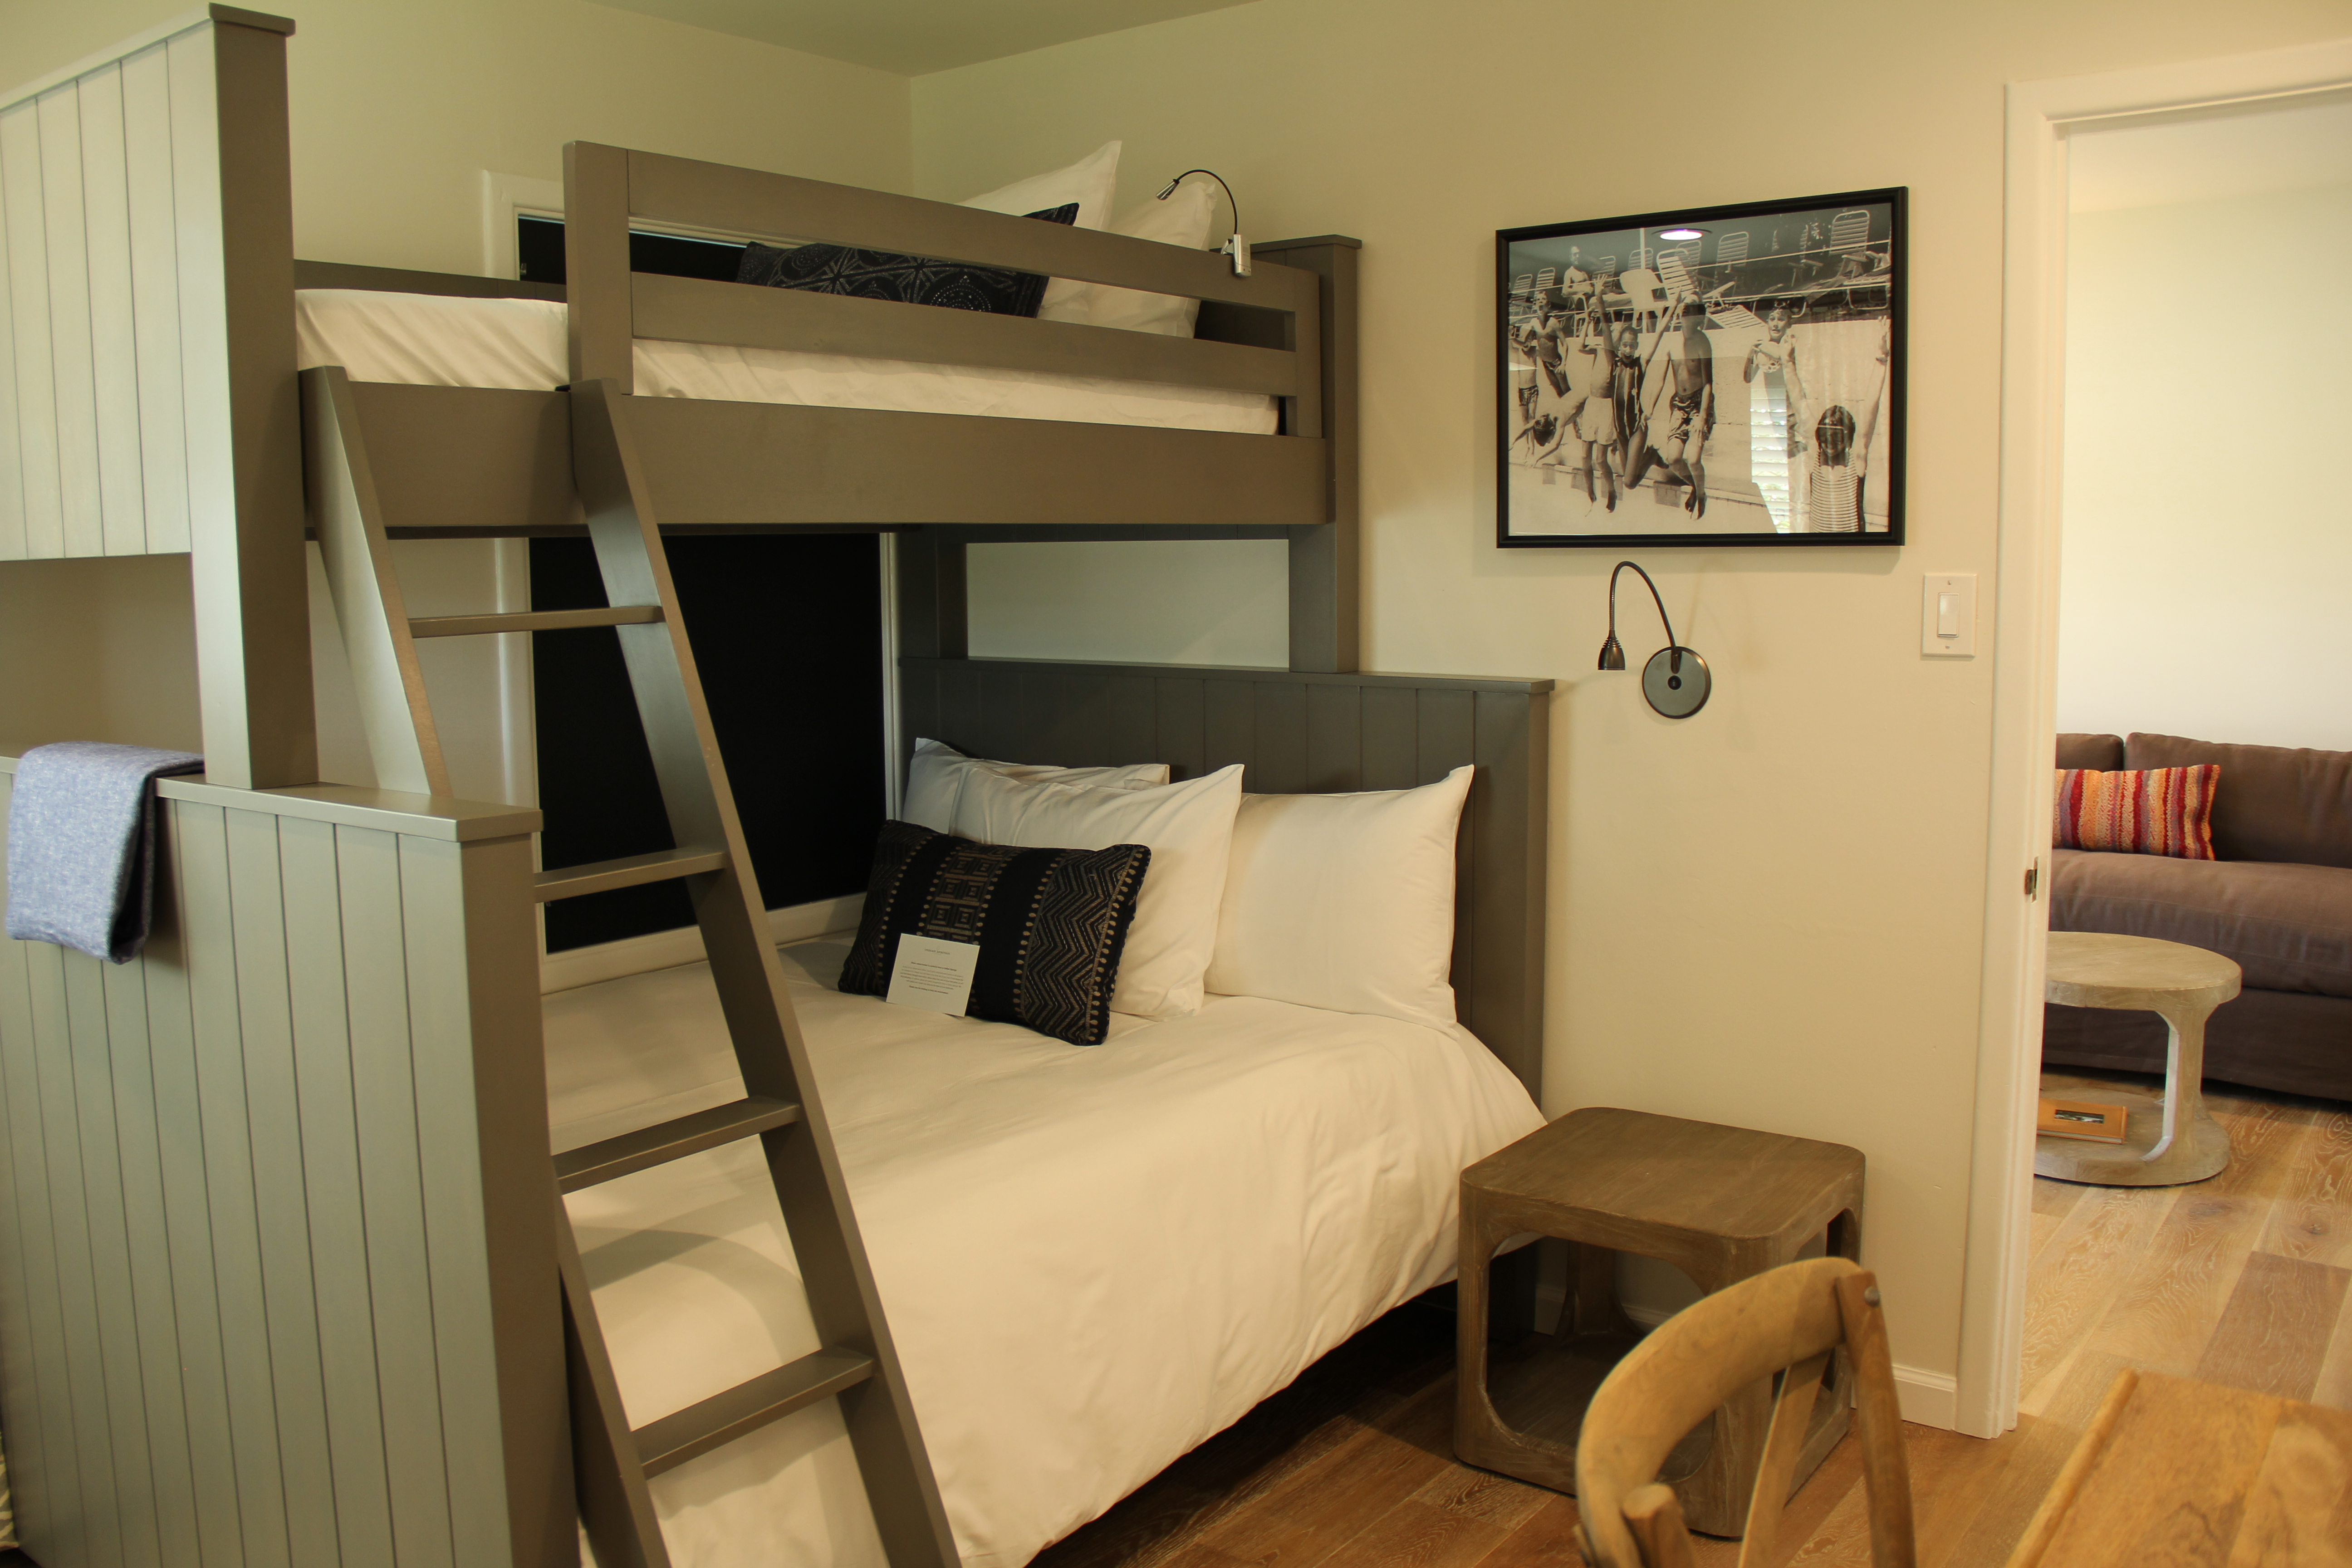 Indian_Springs_Bunks